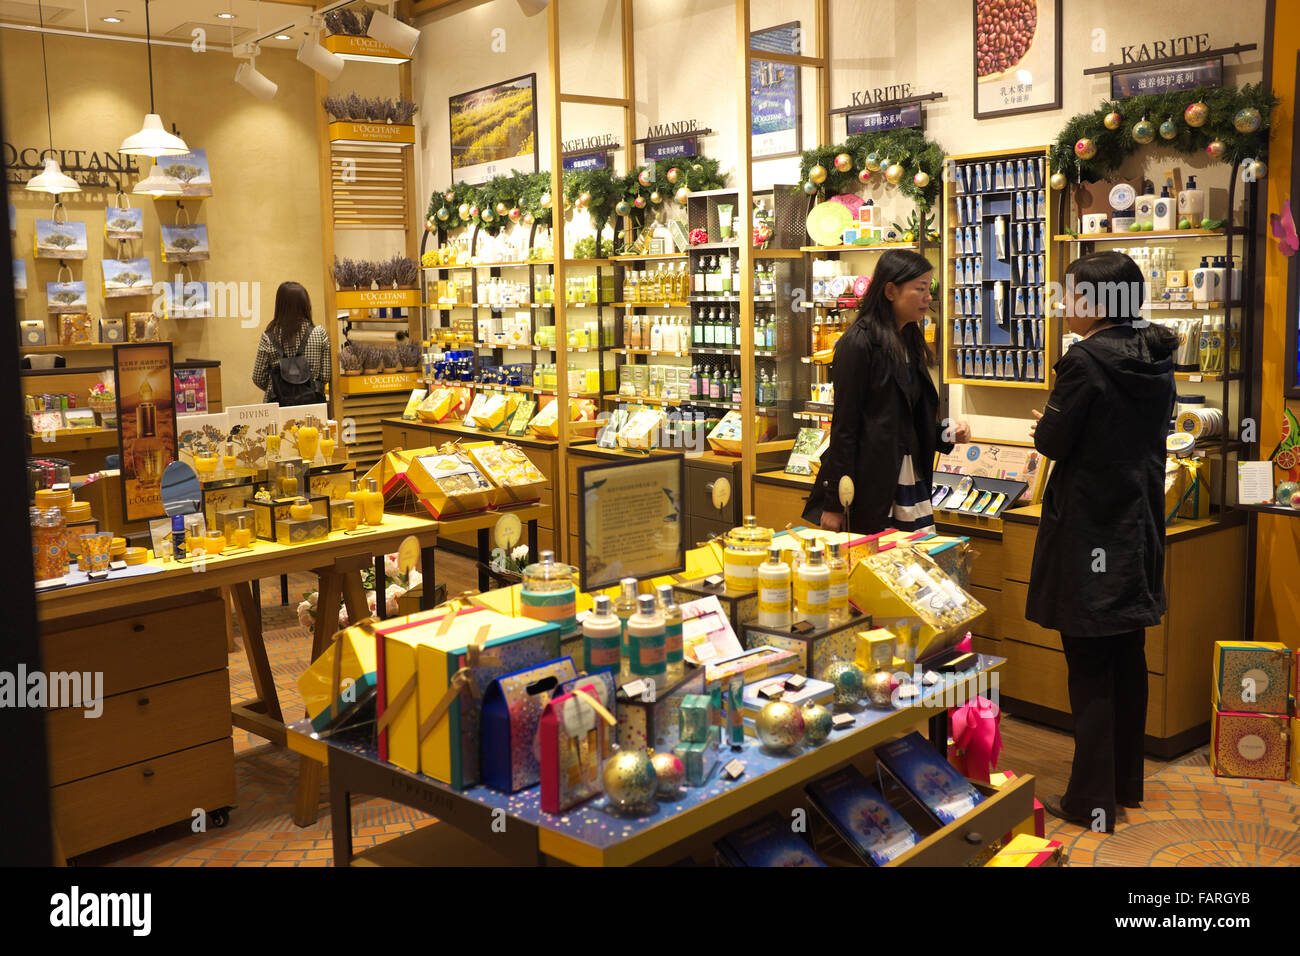 l 39 occitane en provence store in shanghai china stock photo royalty free image 92716607 alamy. Black Bedroom Furniture Sets. Home Design Ideas